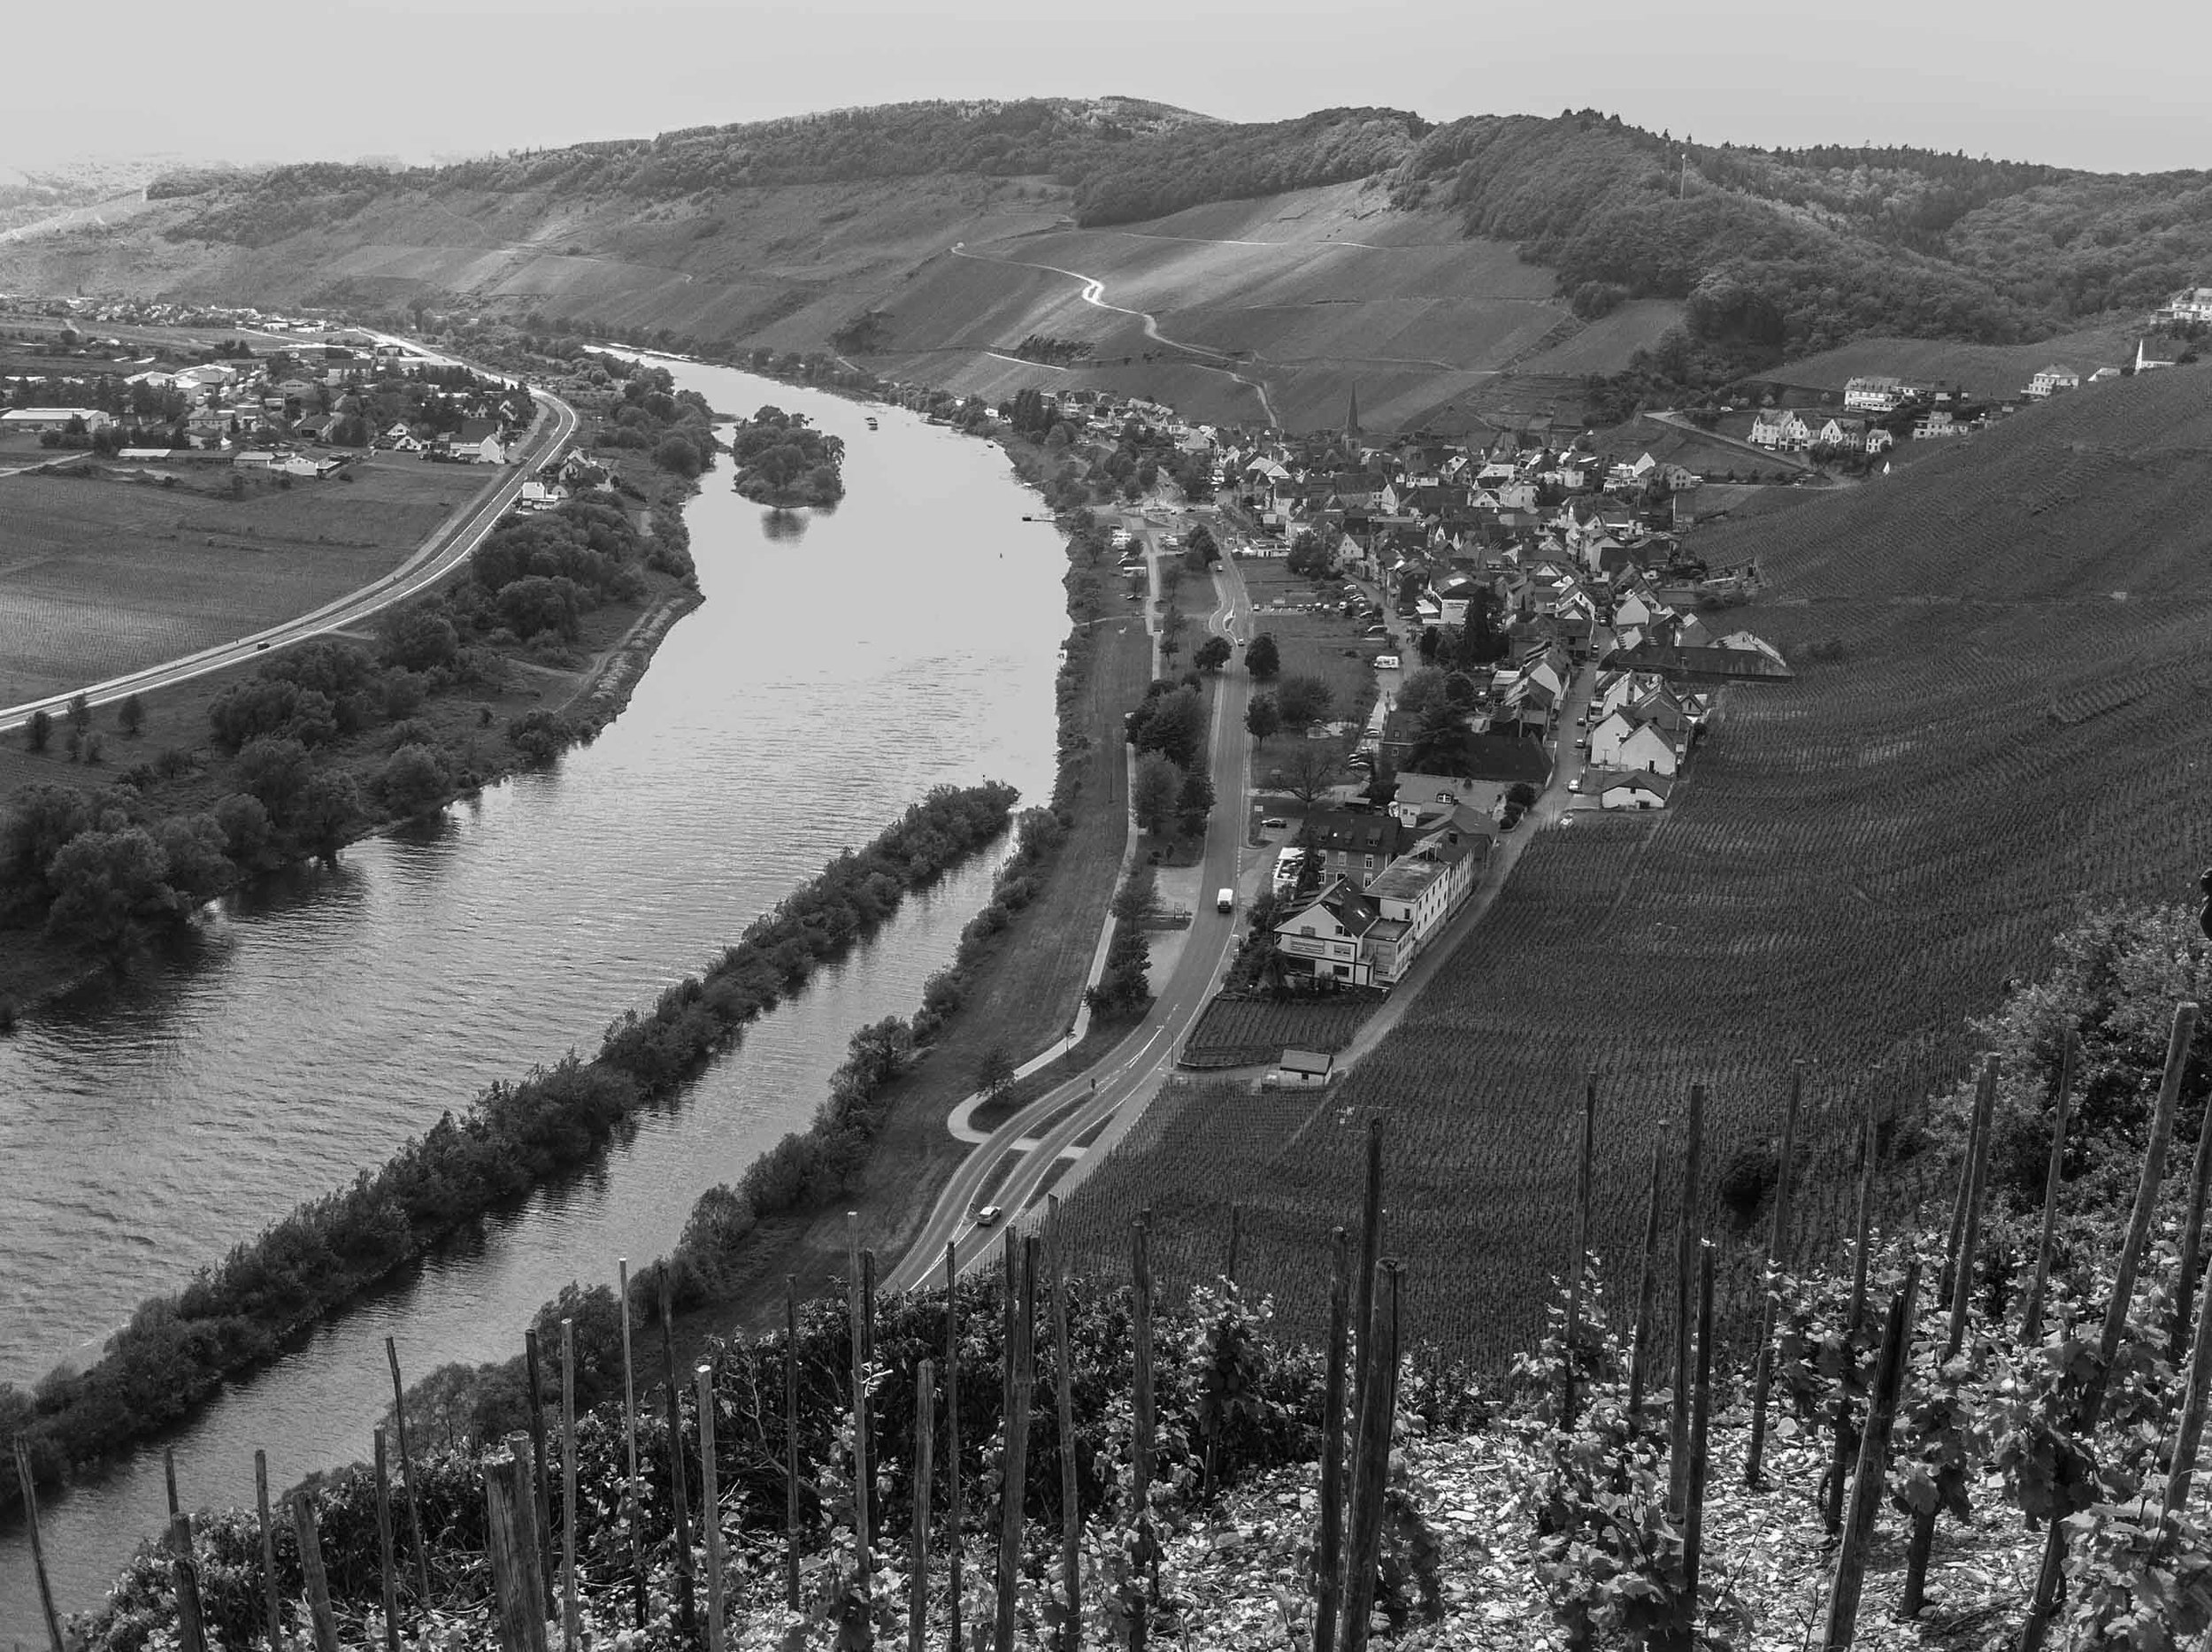 Ürzig Village from the Würzgarten vineyard-1817.jpg